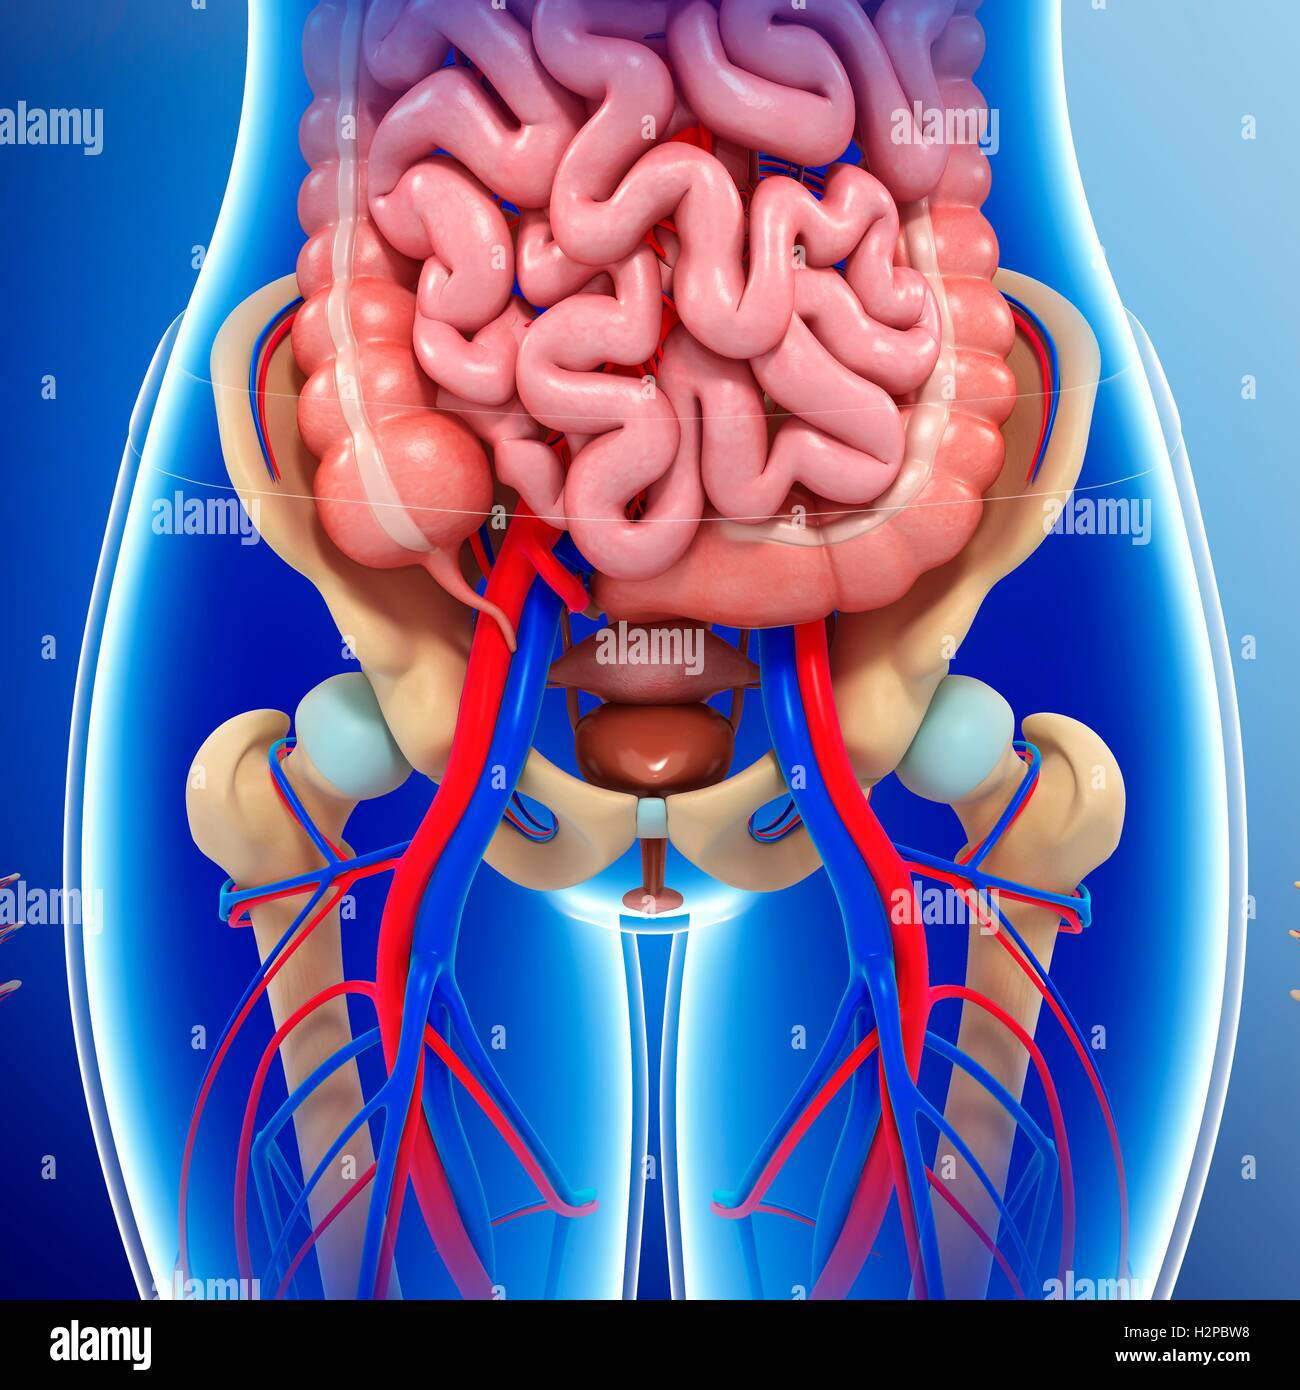 What are the pelvic organs. Pathologies of these organs